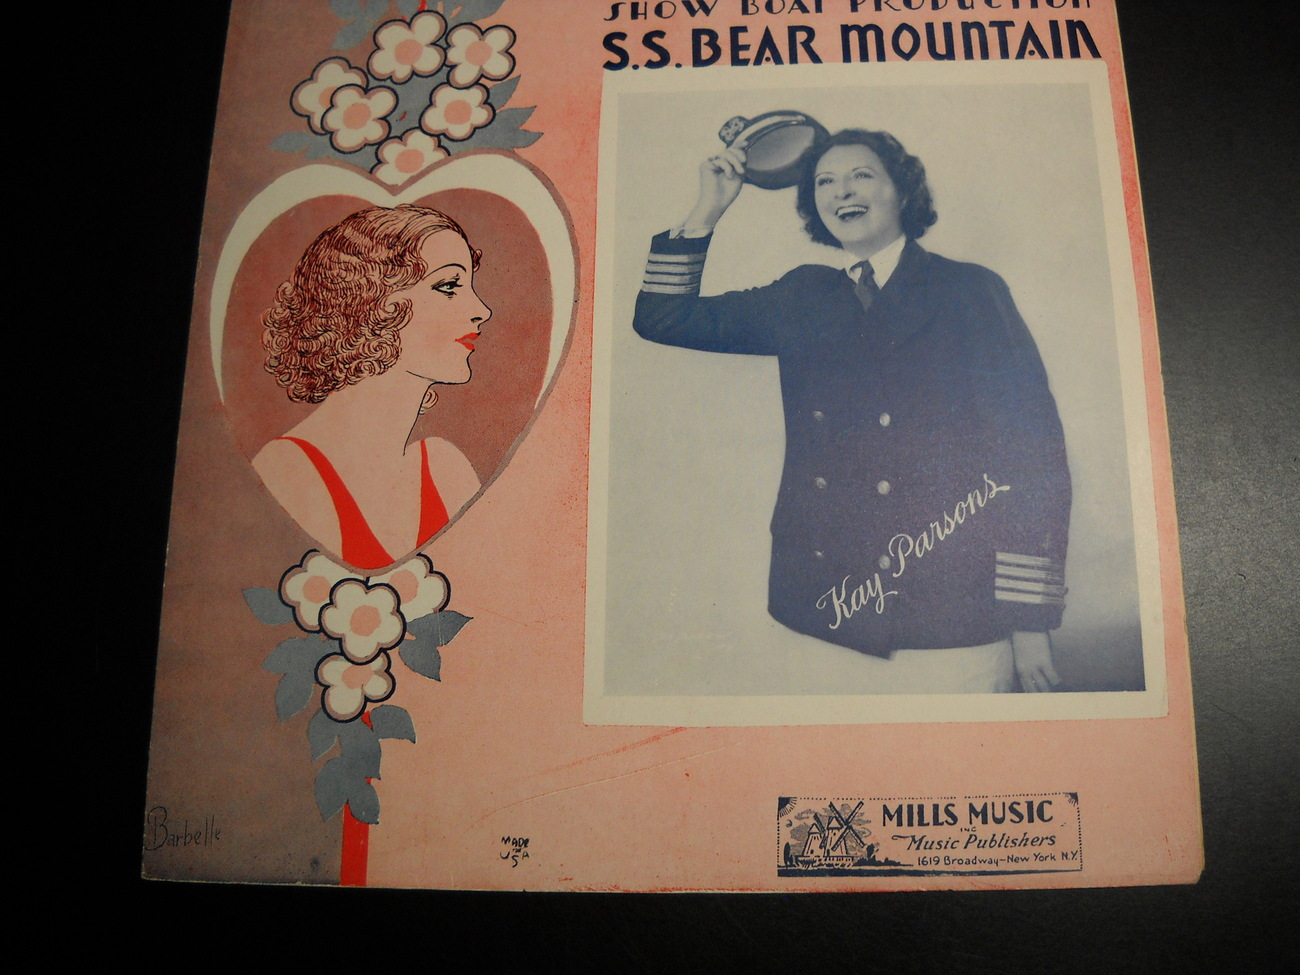 Sheet_music_there_s_so_much_to_say_with_a_lovely_bouquet_ss_bear_mountain_kay_parsons_1936_mills_music_03